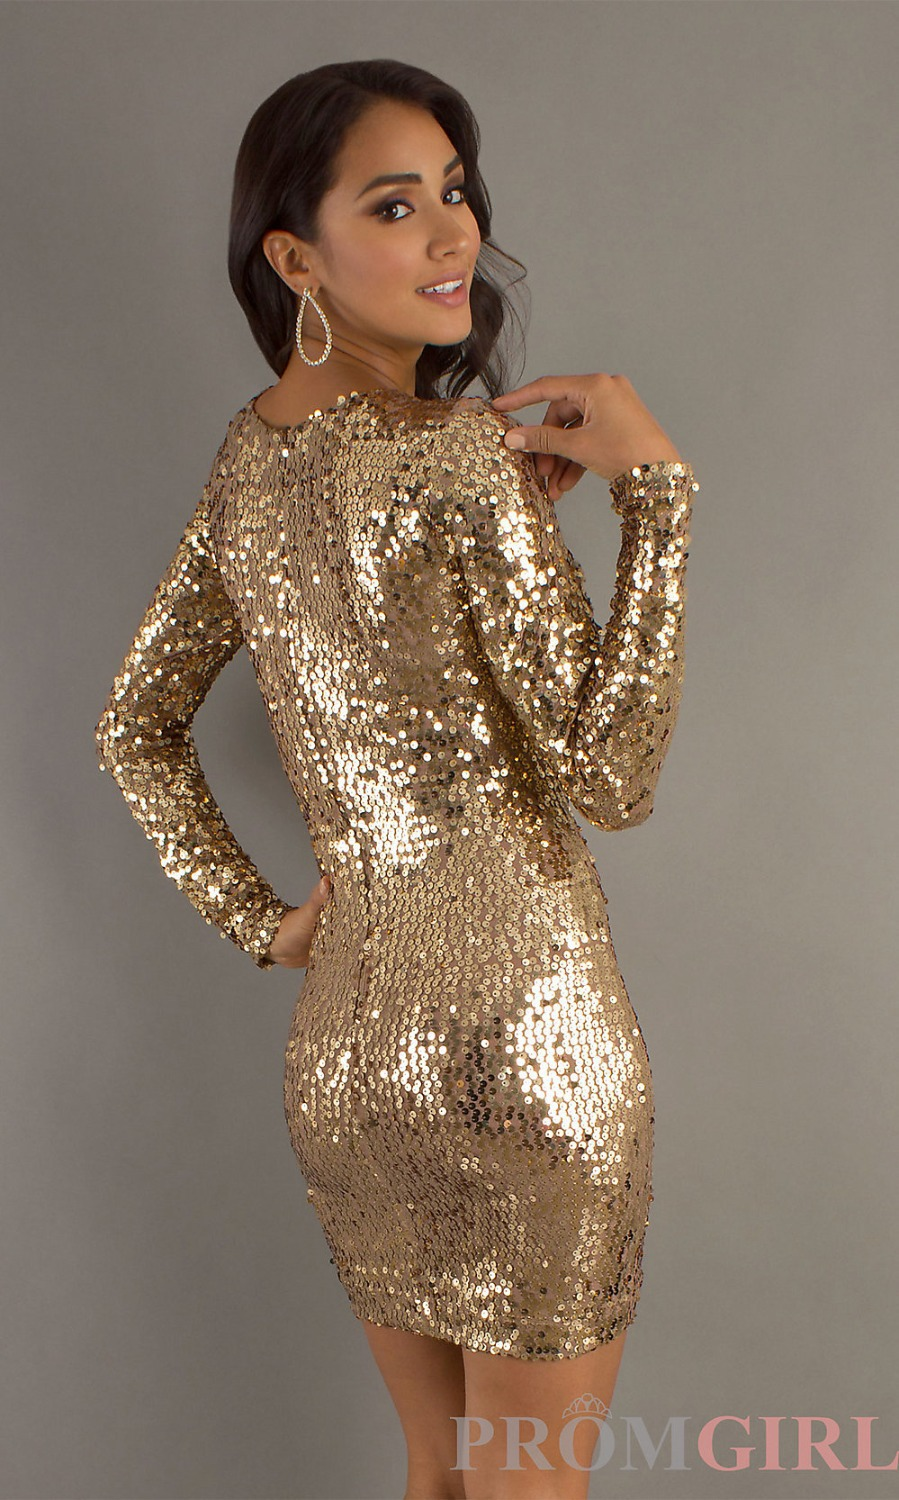 Free Shipping Sexy High Neck Pageant Gowns Gold Sequin Modest Prom Dresses  With Sleeves 2014 New Design-in Cocktail Dresses from Weddings   Events on  ... 19fef78faefc